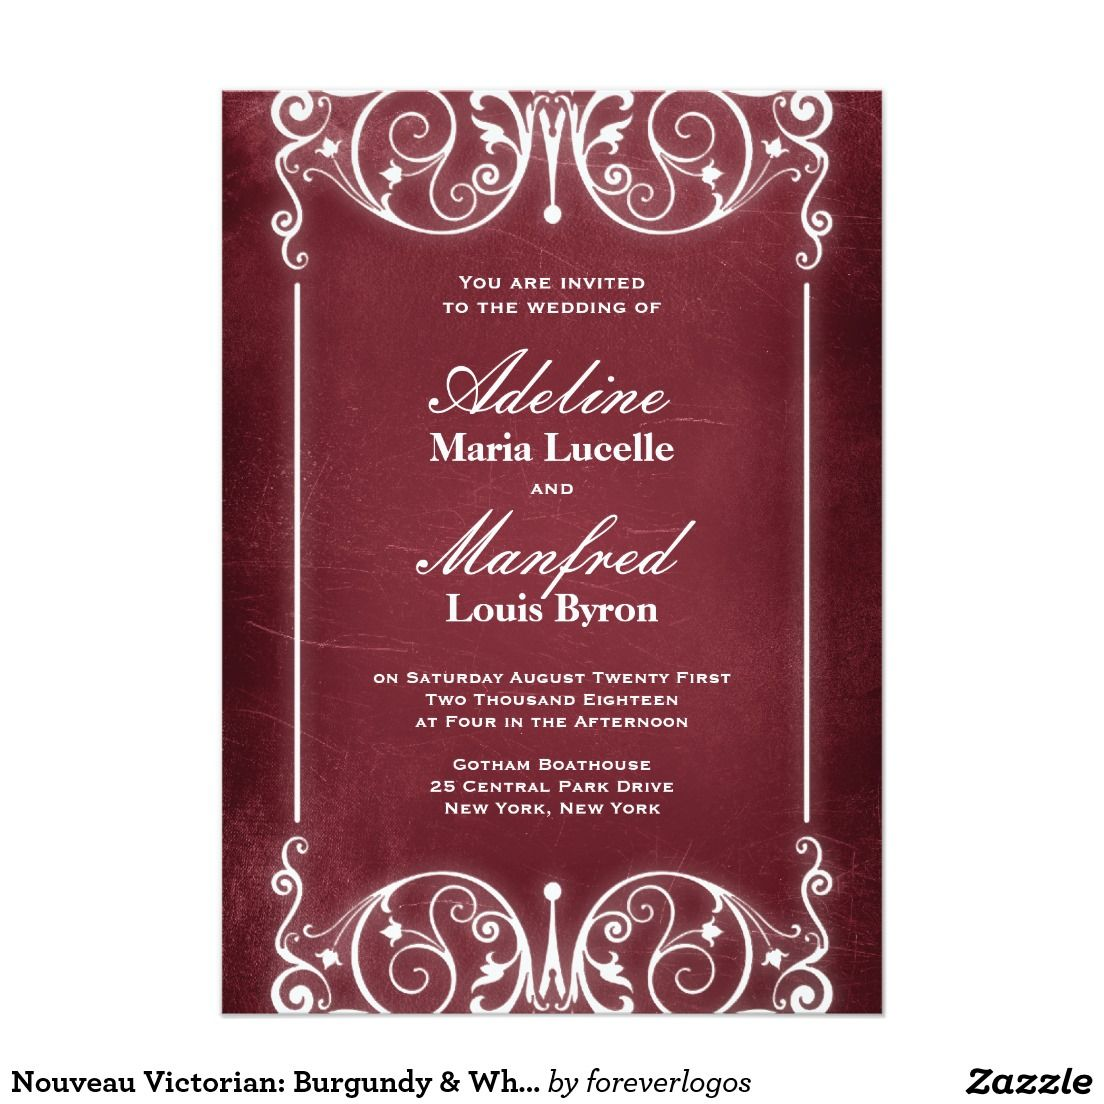 Nouveau Victorian: Burgundy & White Wedding Invitation | Pinterest ...